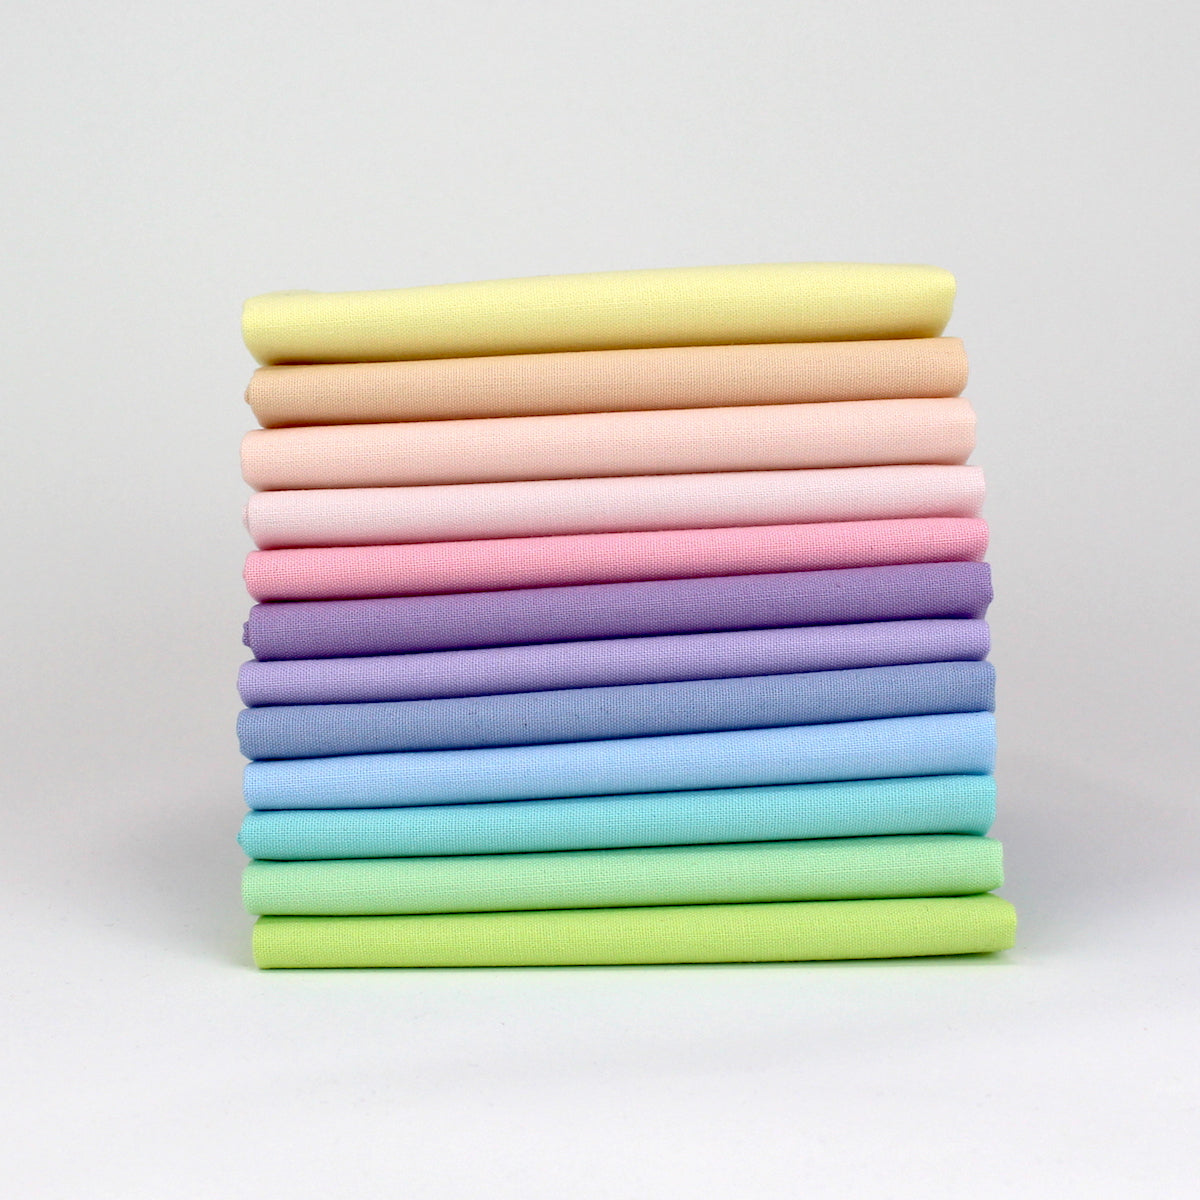 Rainbow Value One - 12 Fat Quarter Bundle - Kona Cotton